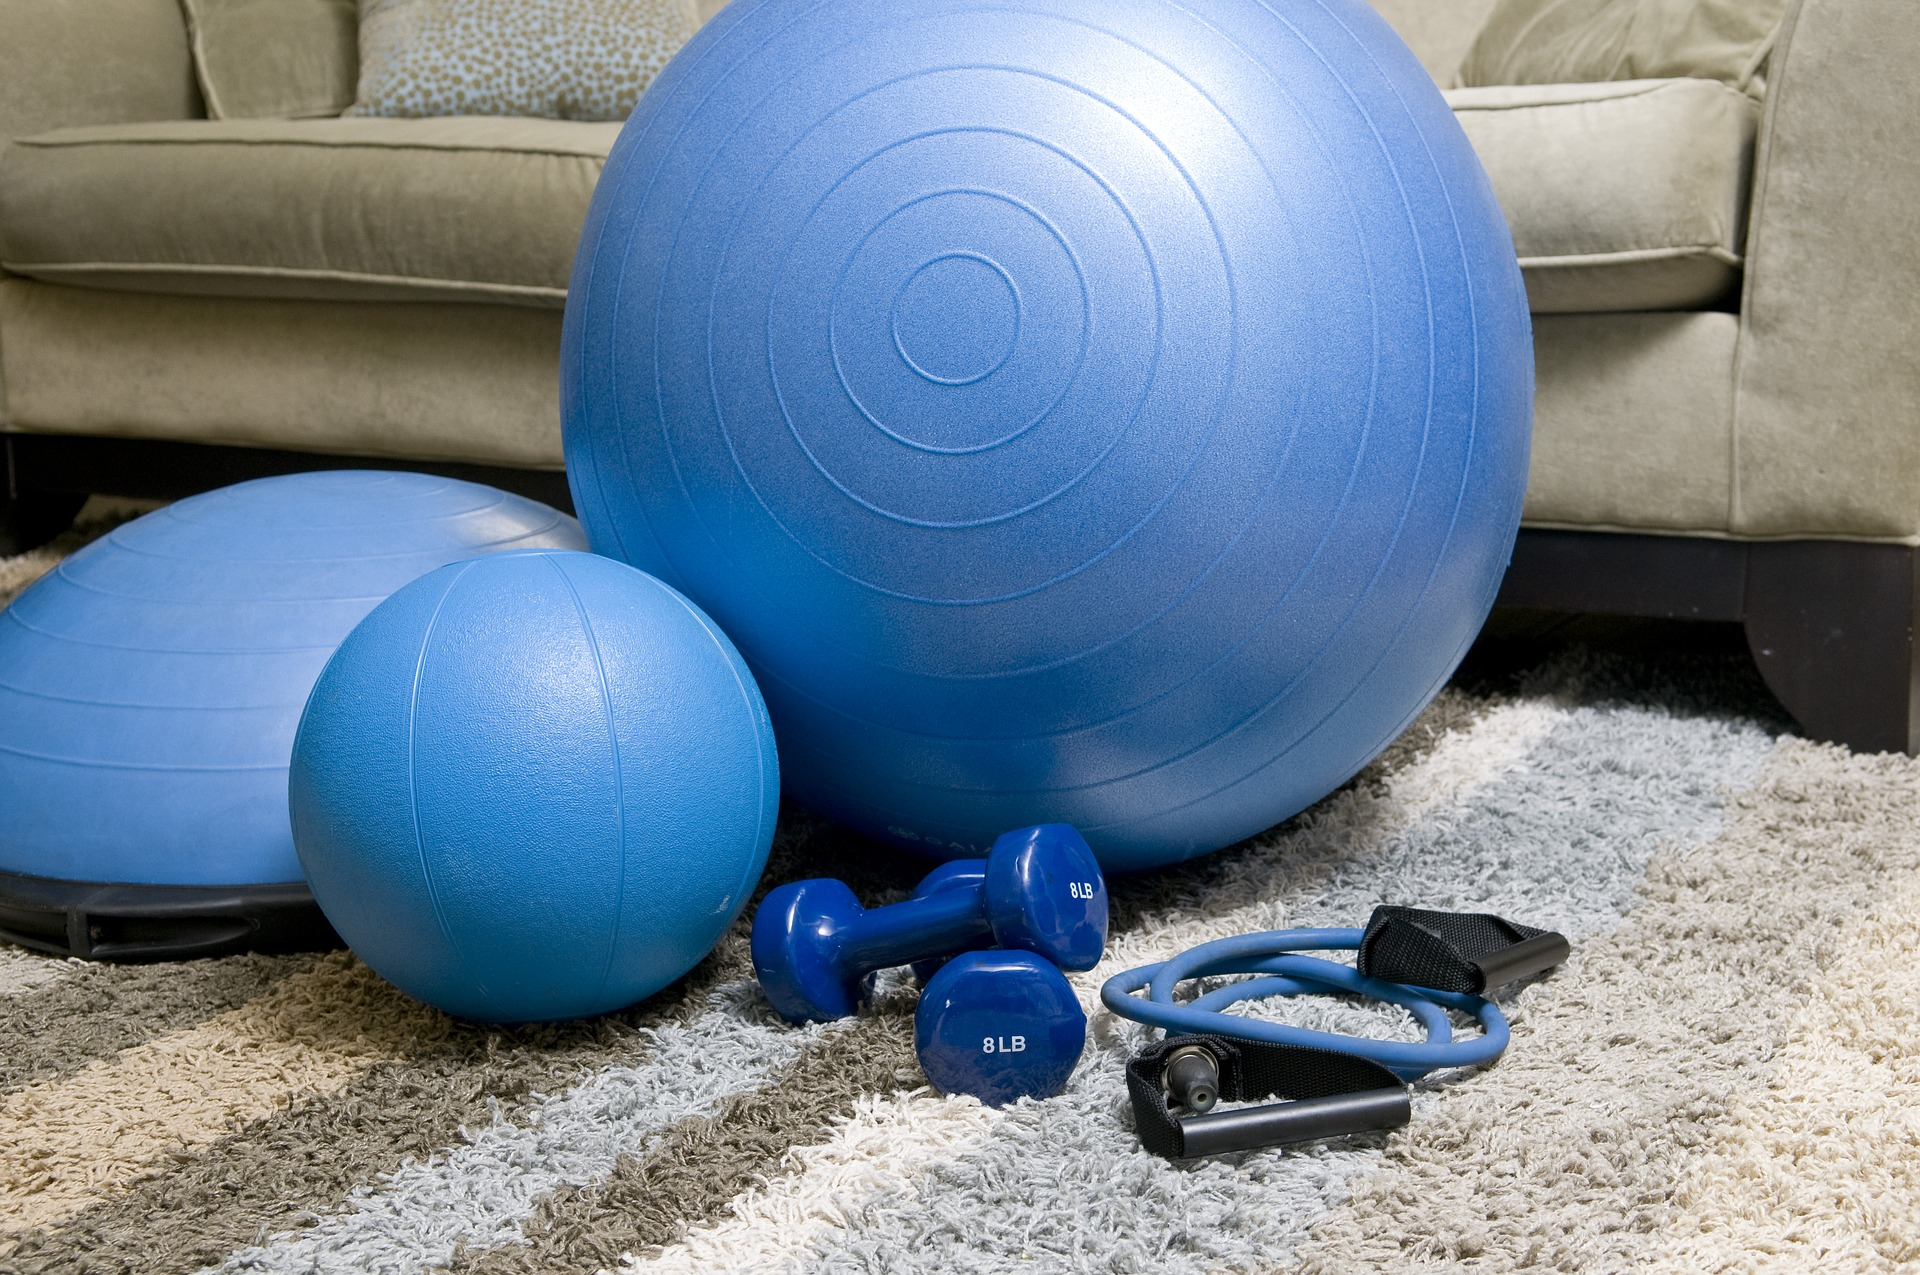 Exercise routine at home: How to stay motivated